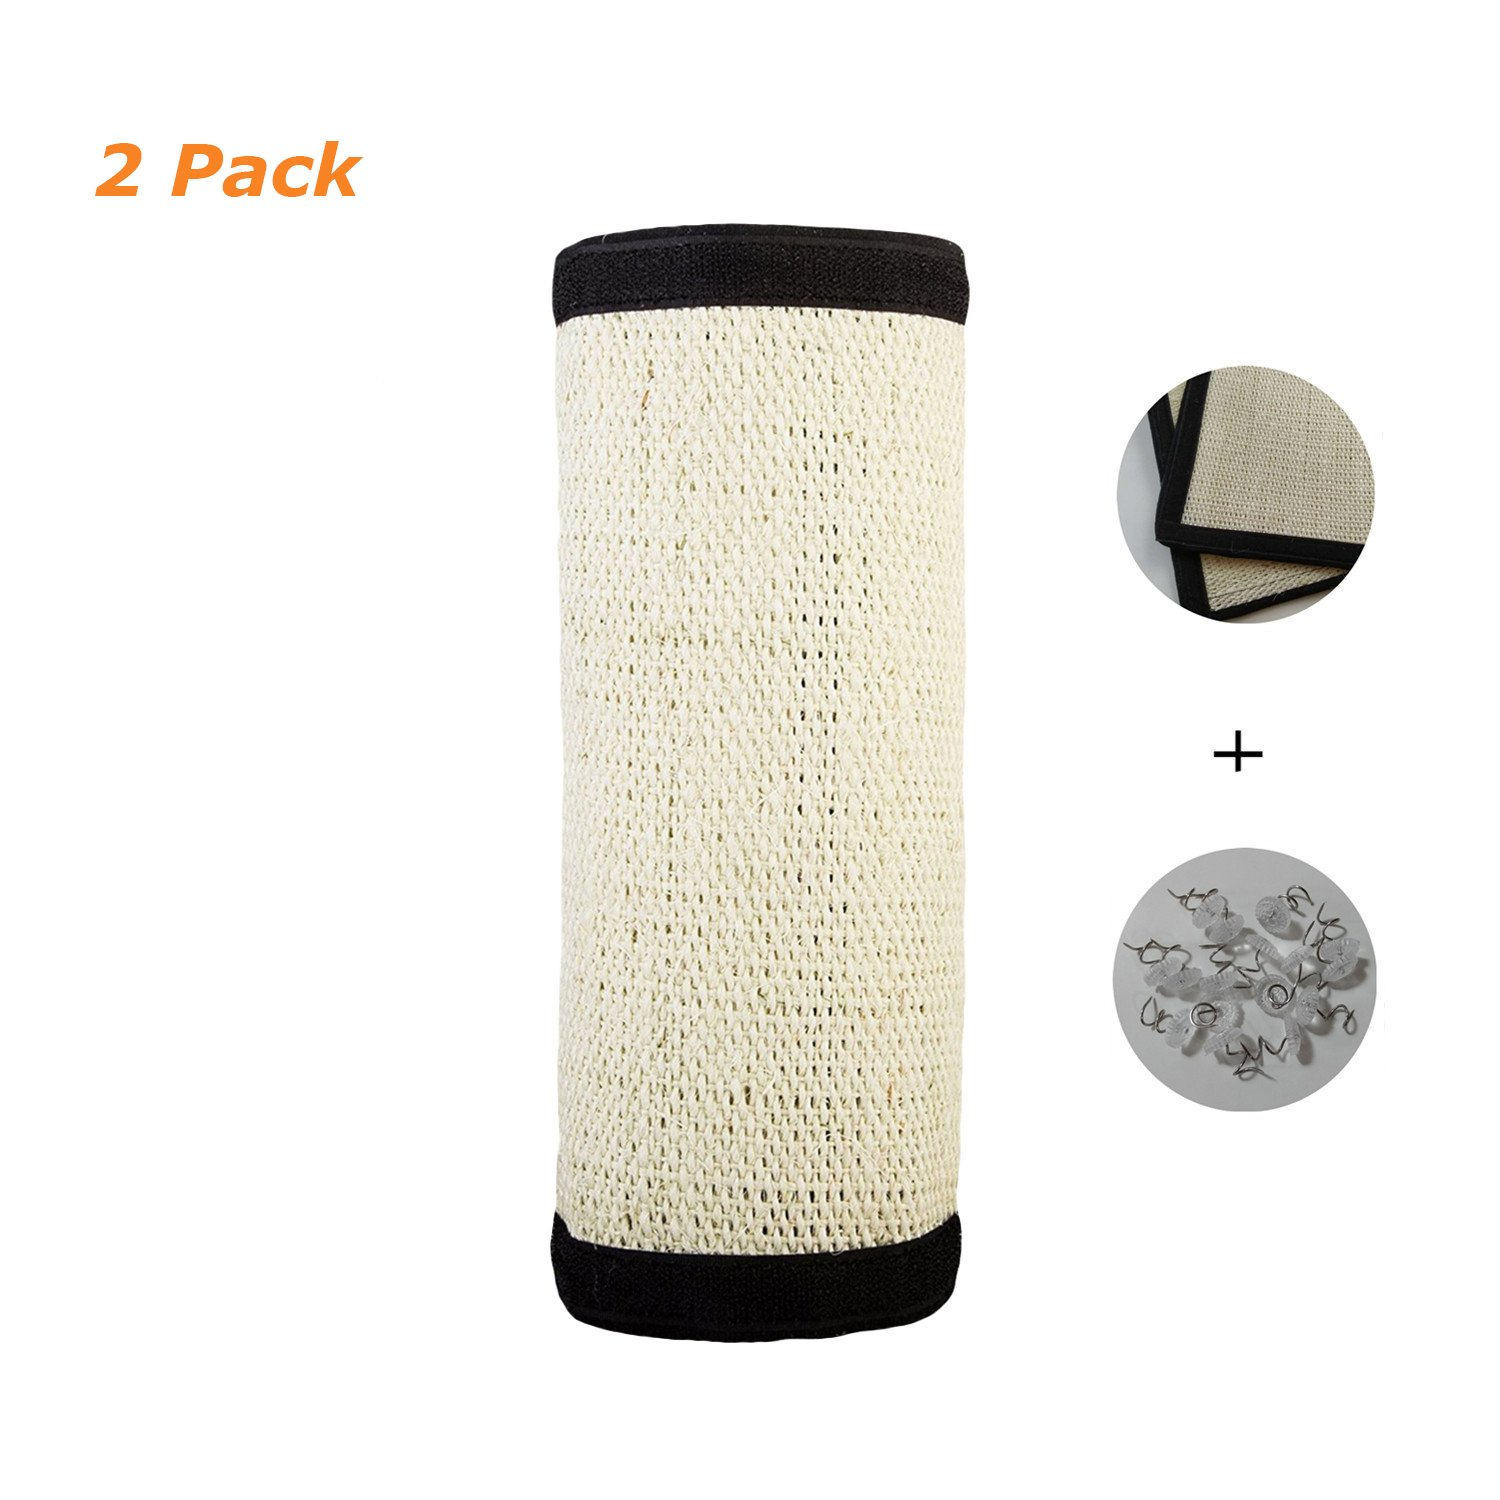 YOUYUN Upgraded 2 in 1 Flexible Sisal Cat Scratching Protector Pad Couch Guard with Spiral Pins and Velcro, Wrapping Around Furniture Legs and Covering Couch (2 Pack, 16''x12'')